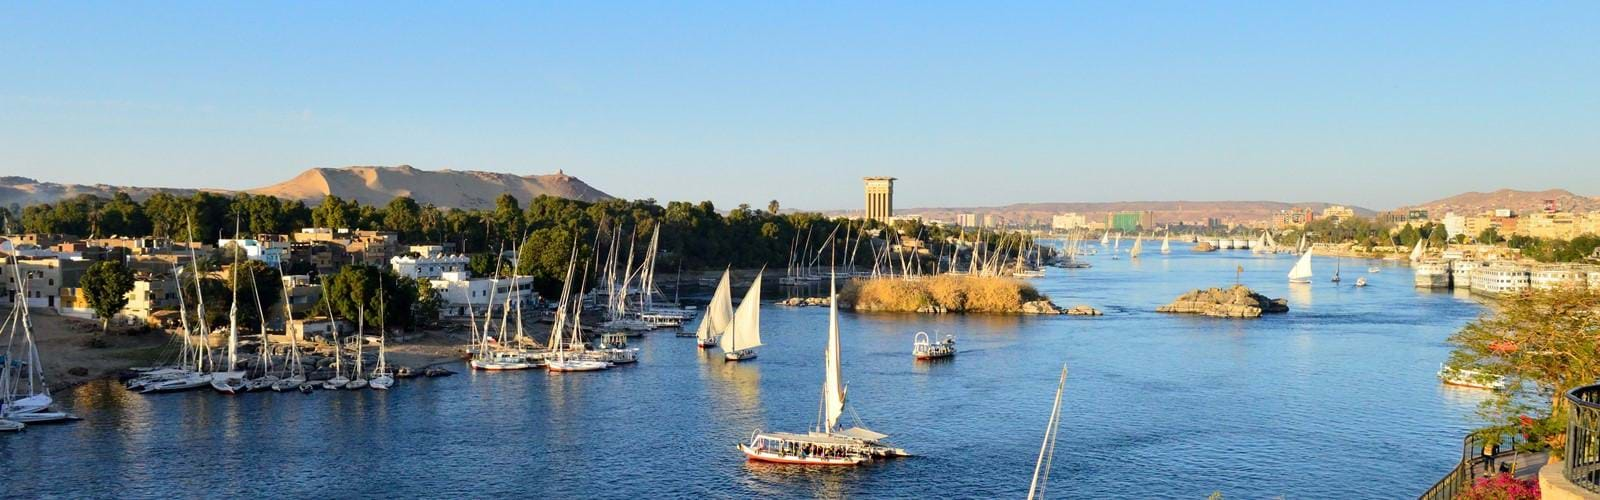 Aswan City Information